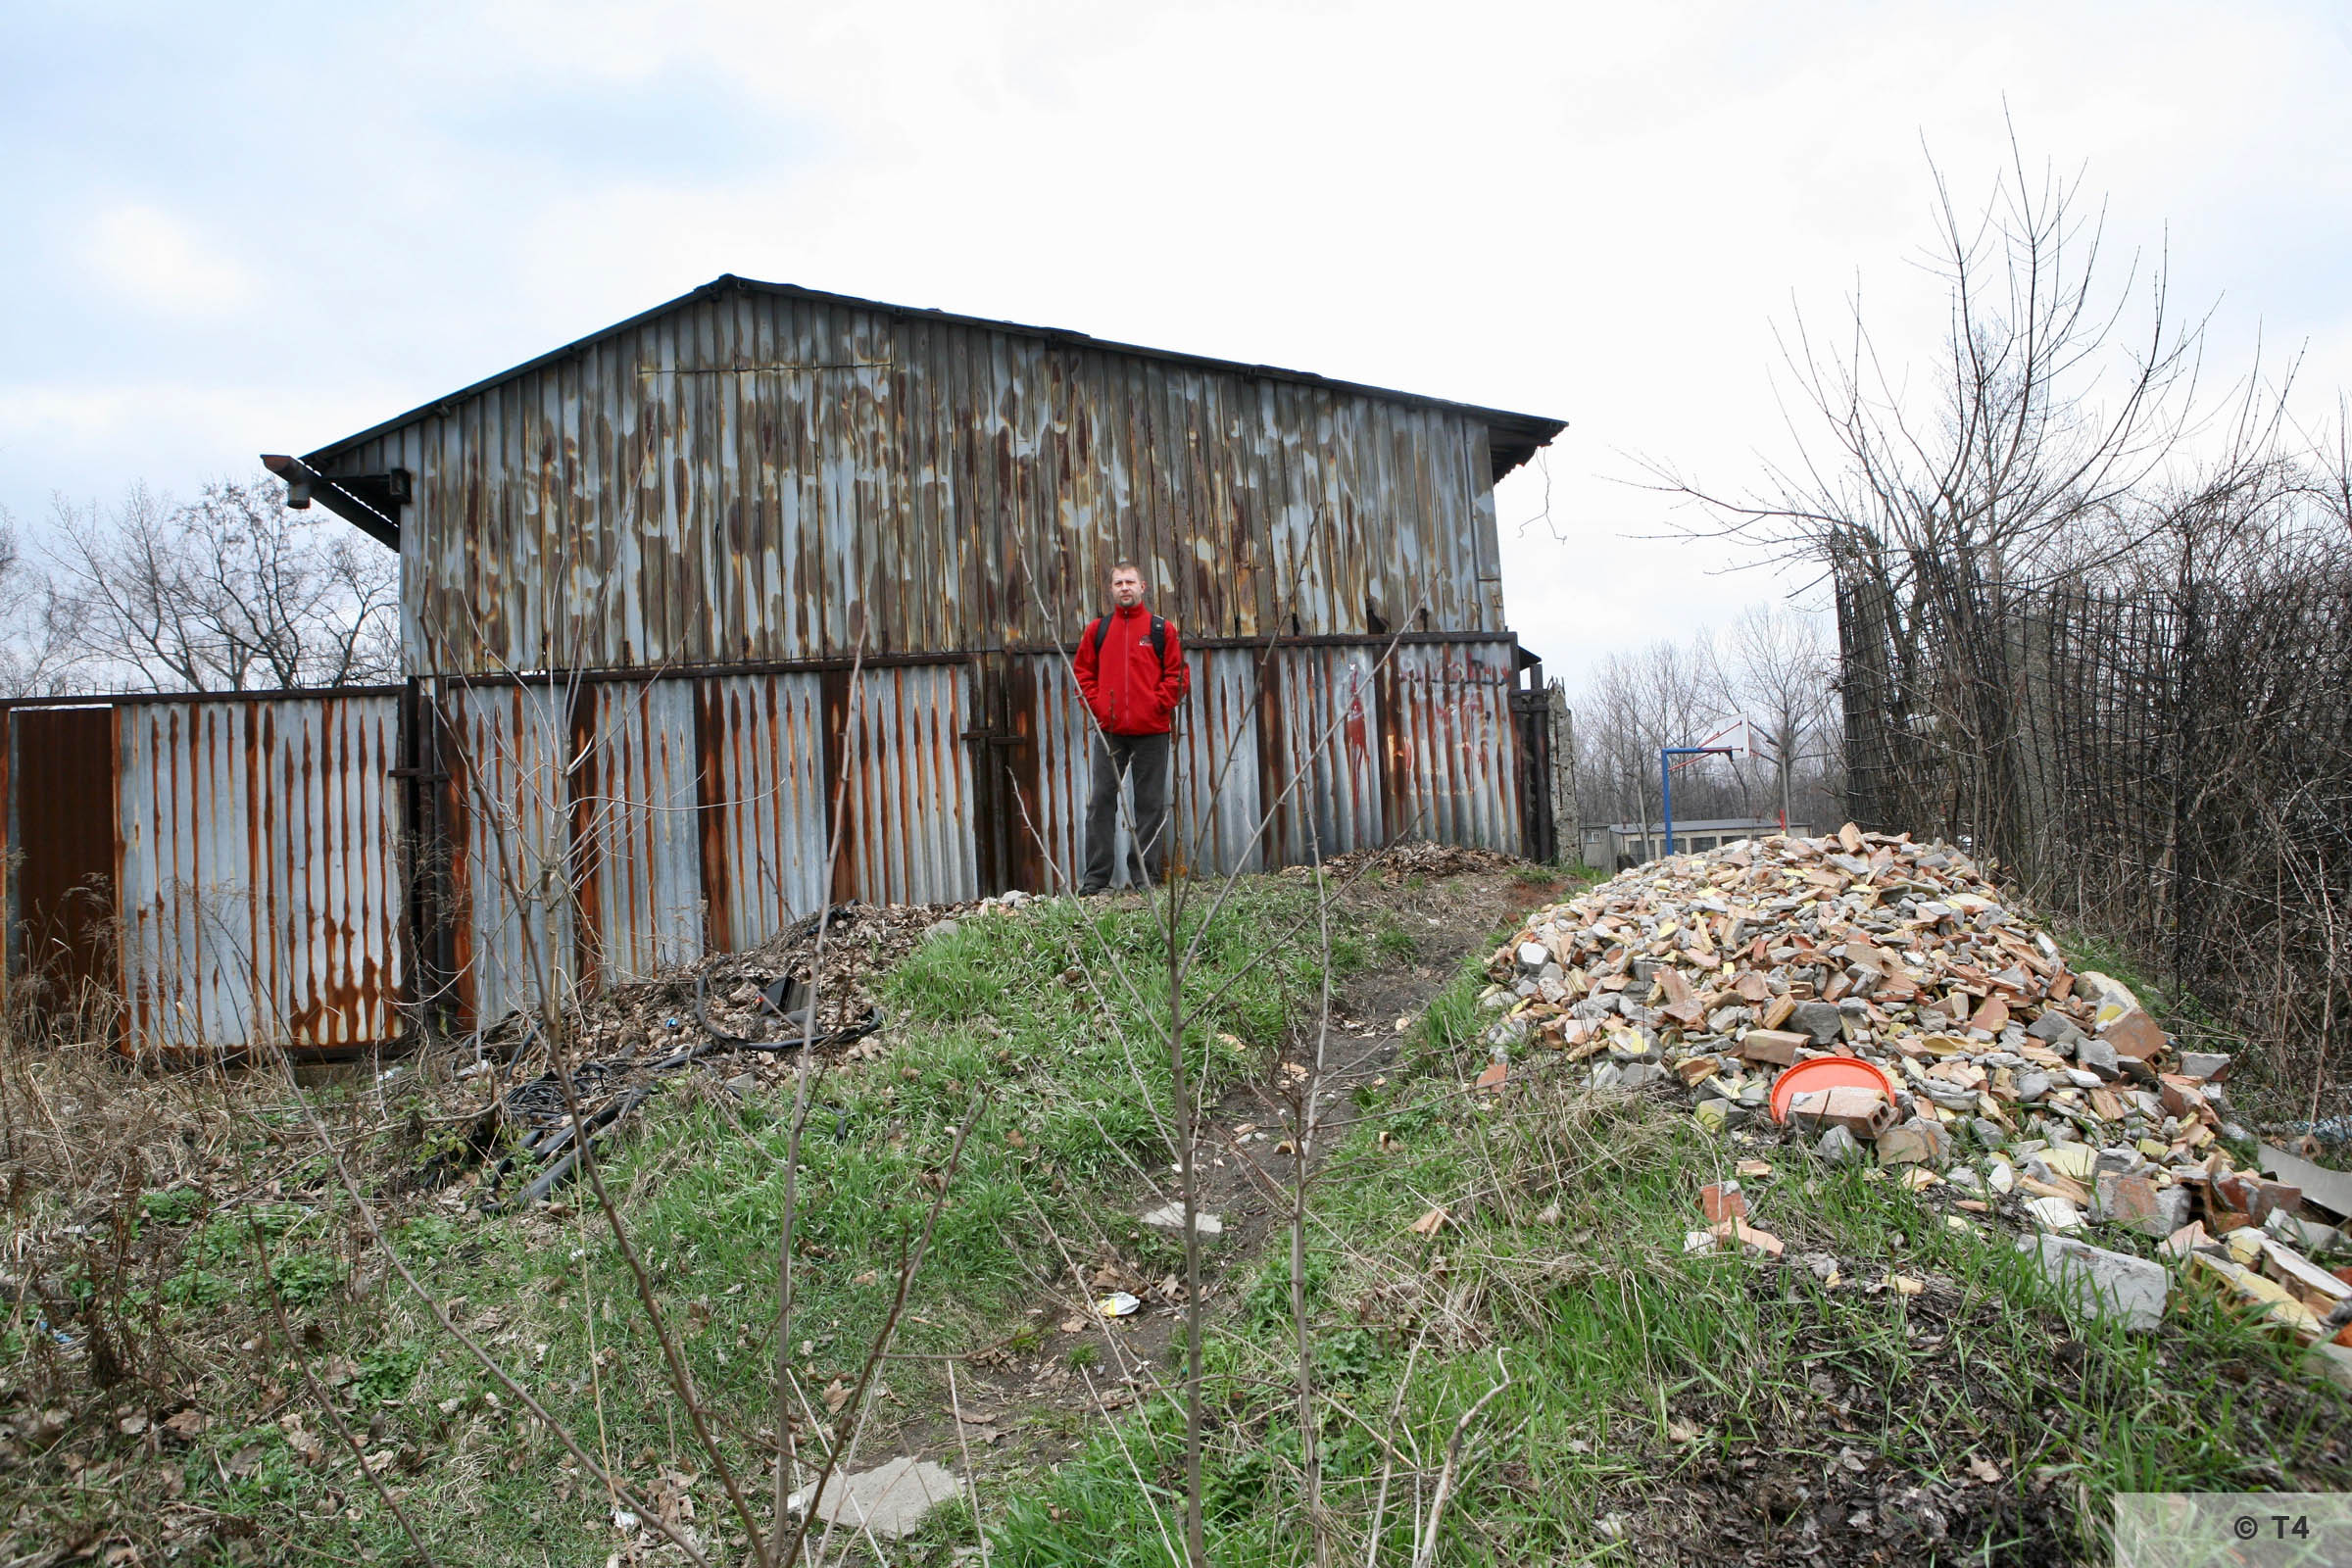 Building of the Wascherei and the cells for prisoners. 2007 T4 6220